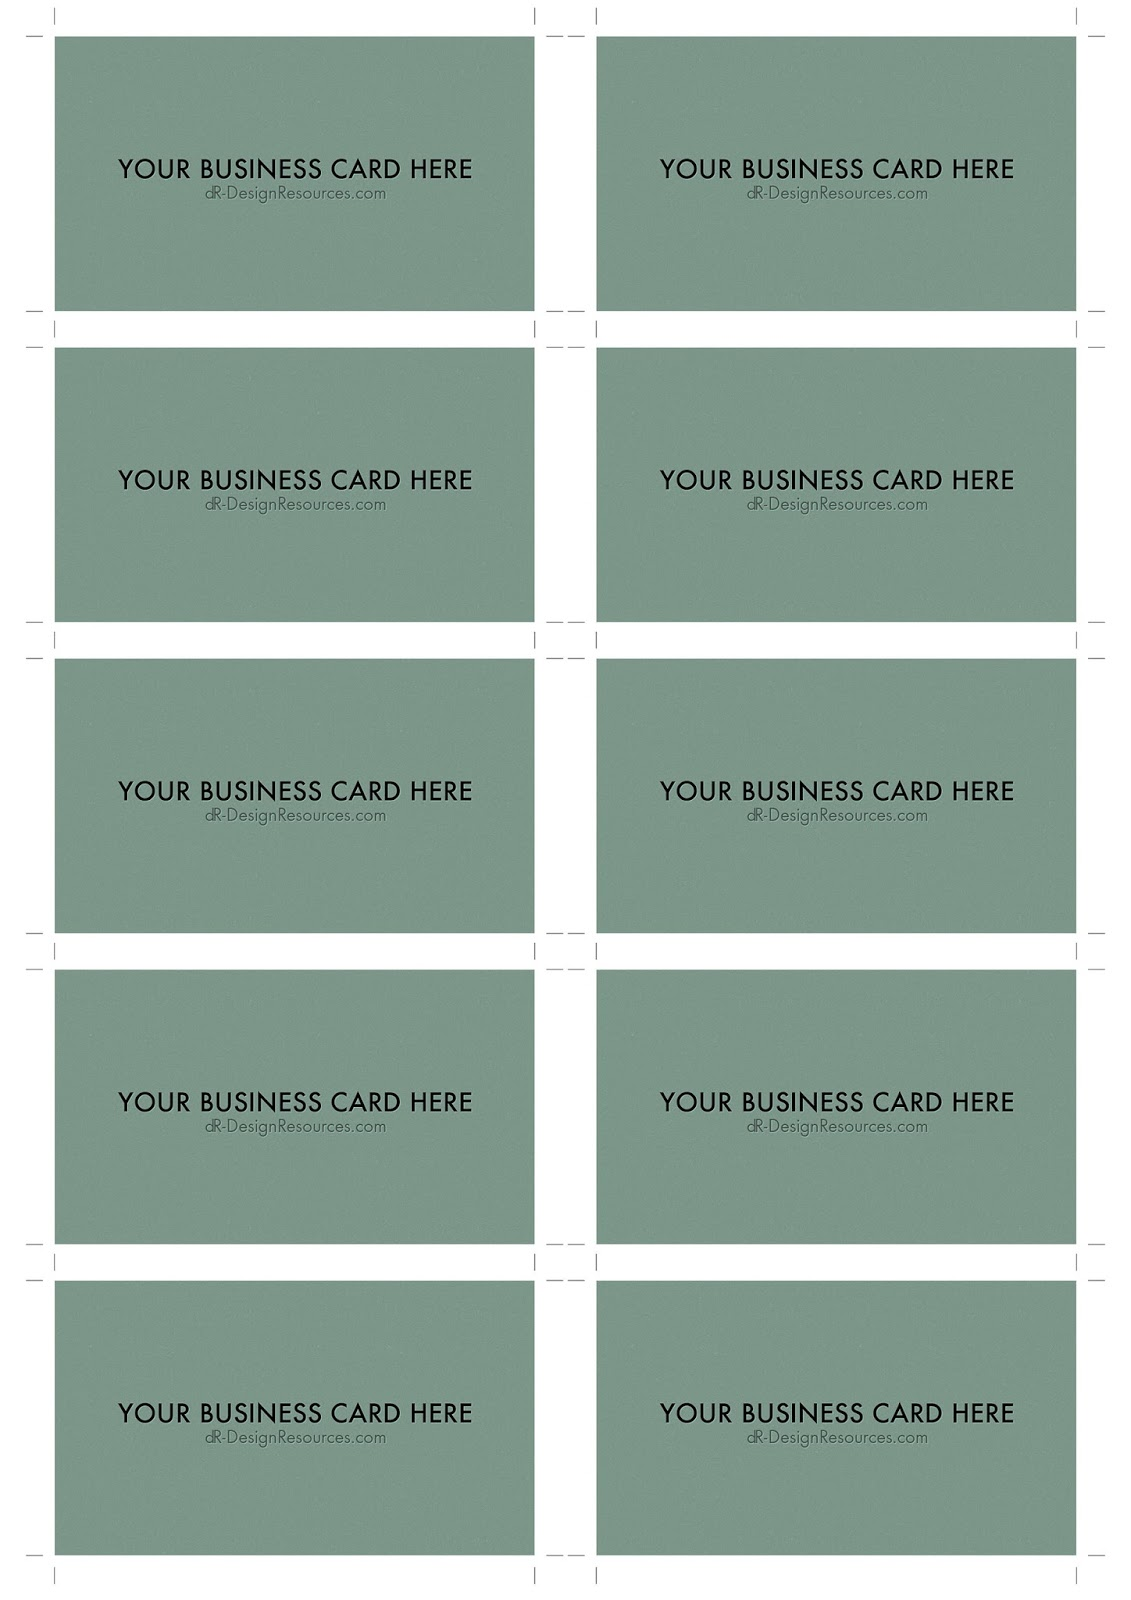 Free photoshop tutorials a4 business card template psd 10 per sheet wajeb